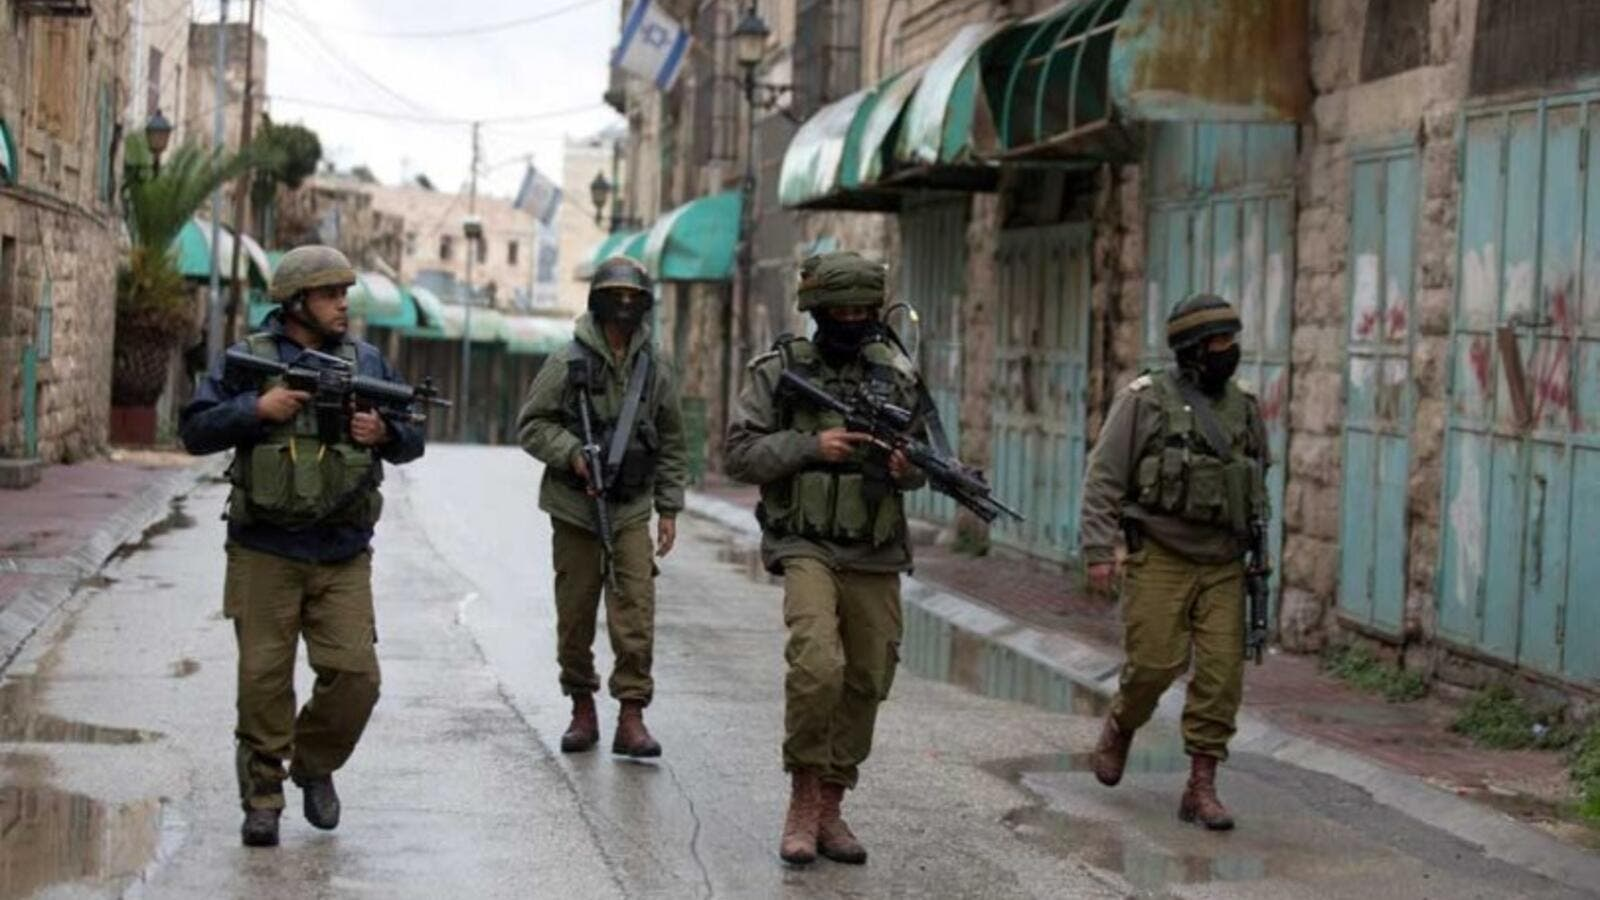 IDF soldiers seen on patrol in Hebron in the West Bank. (AFP/File)